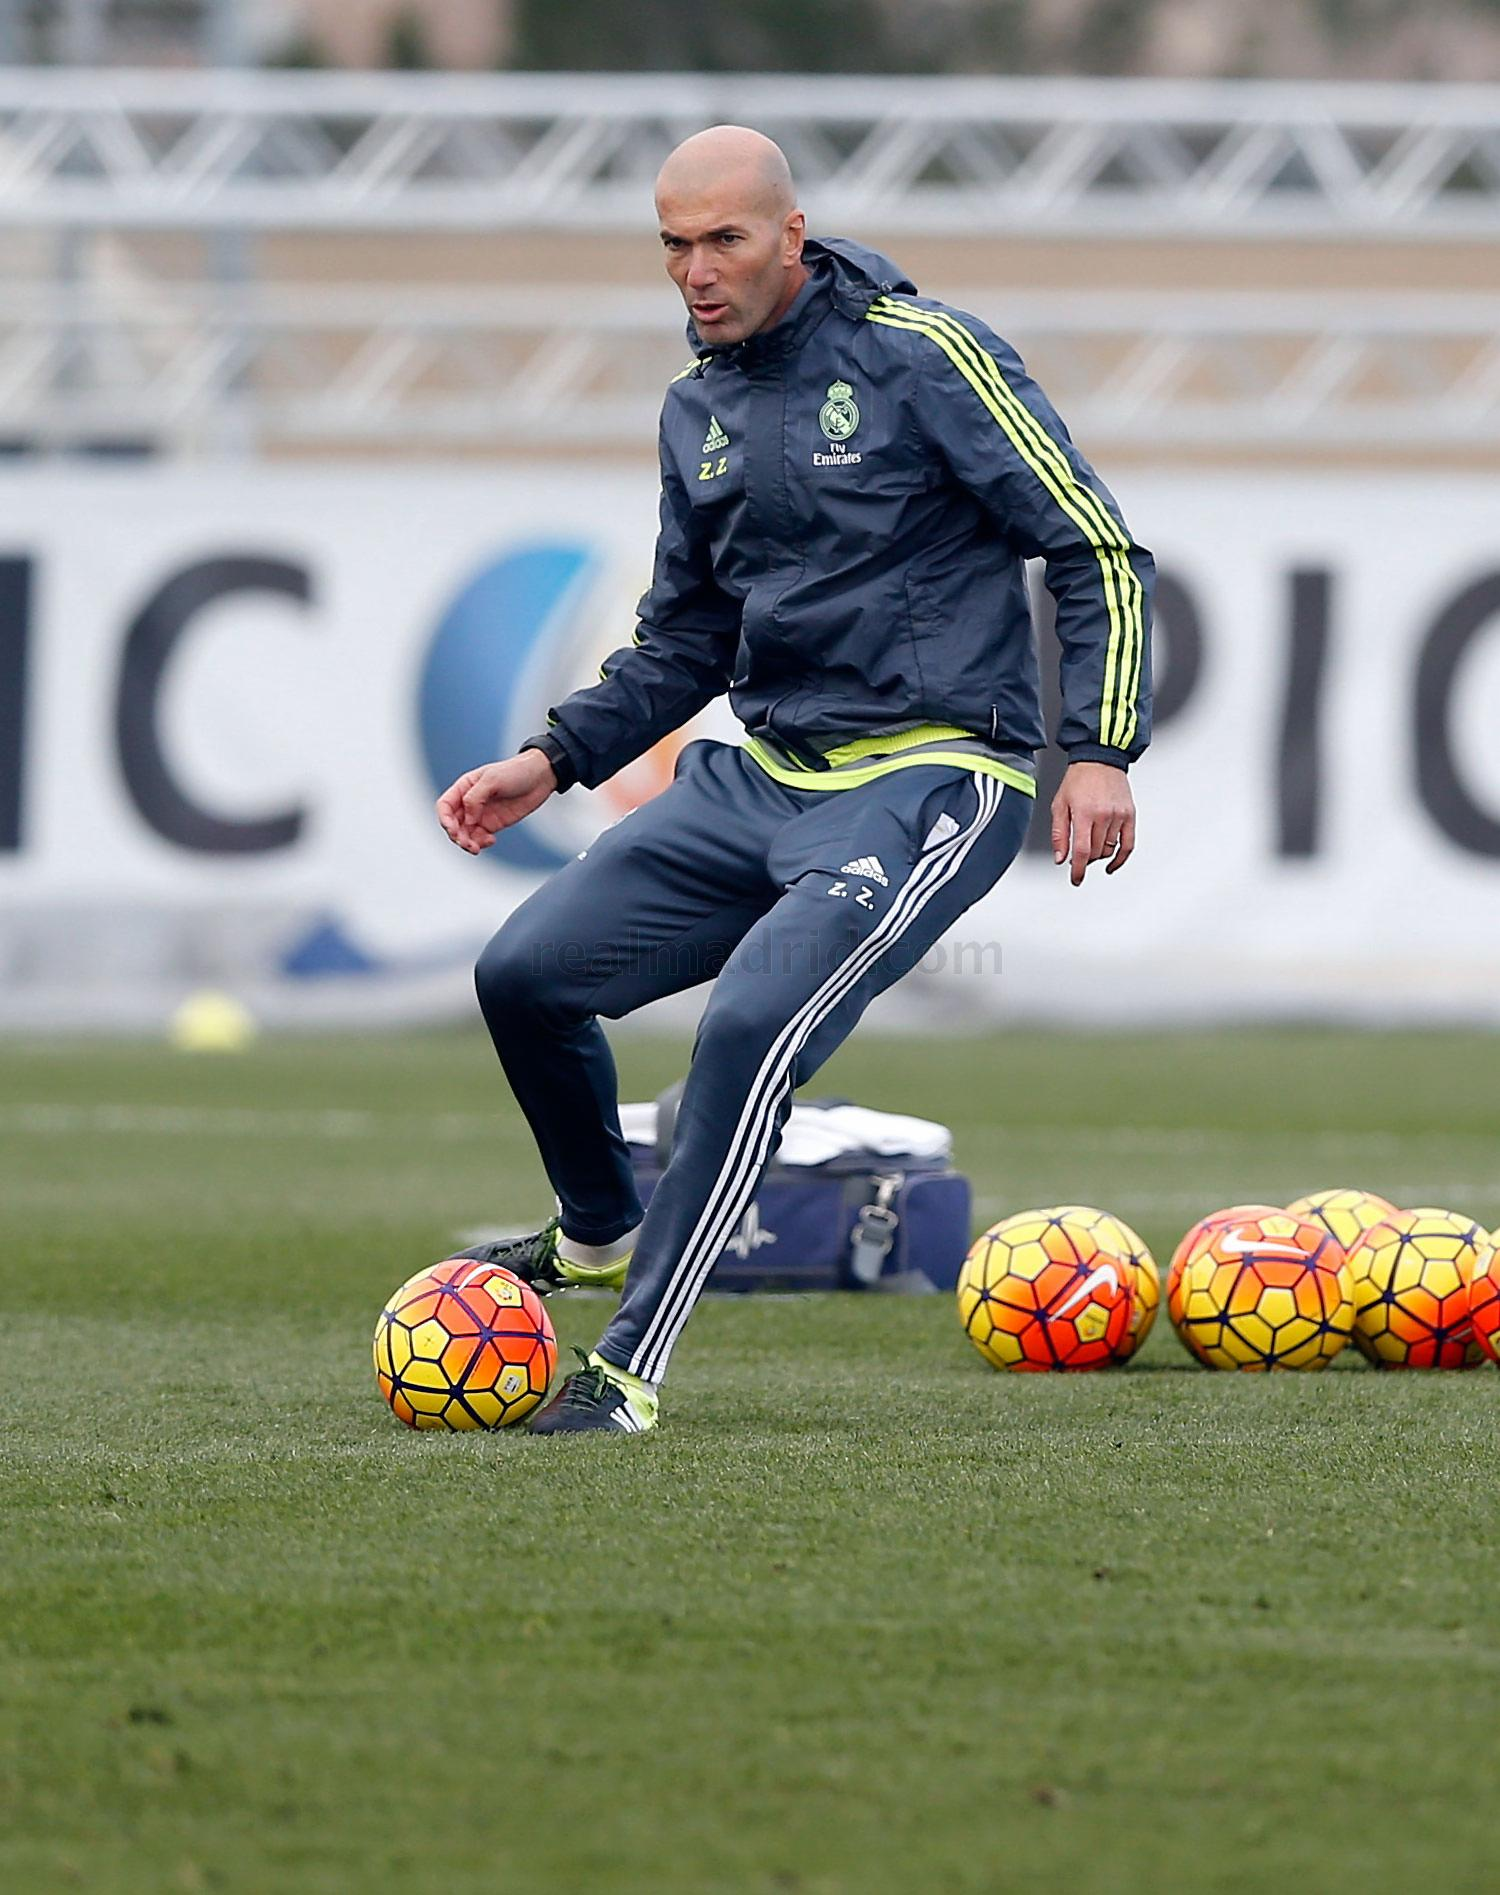 Real Madrid - Entrenamiento del Real Madrid - 20-01-2016